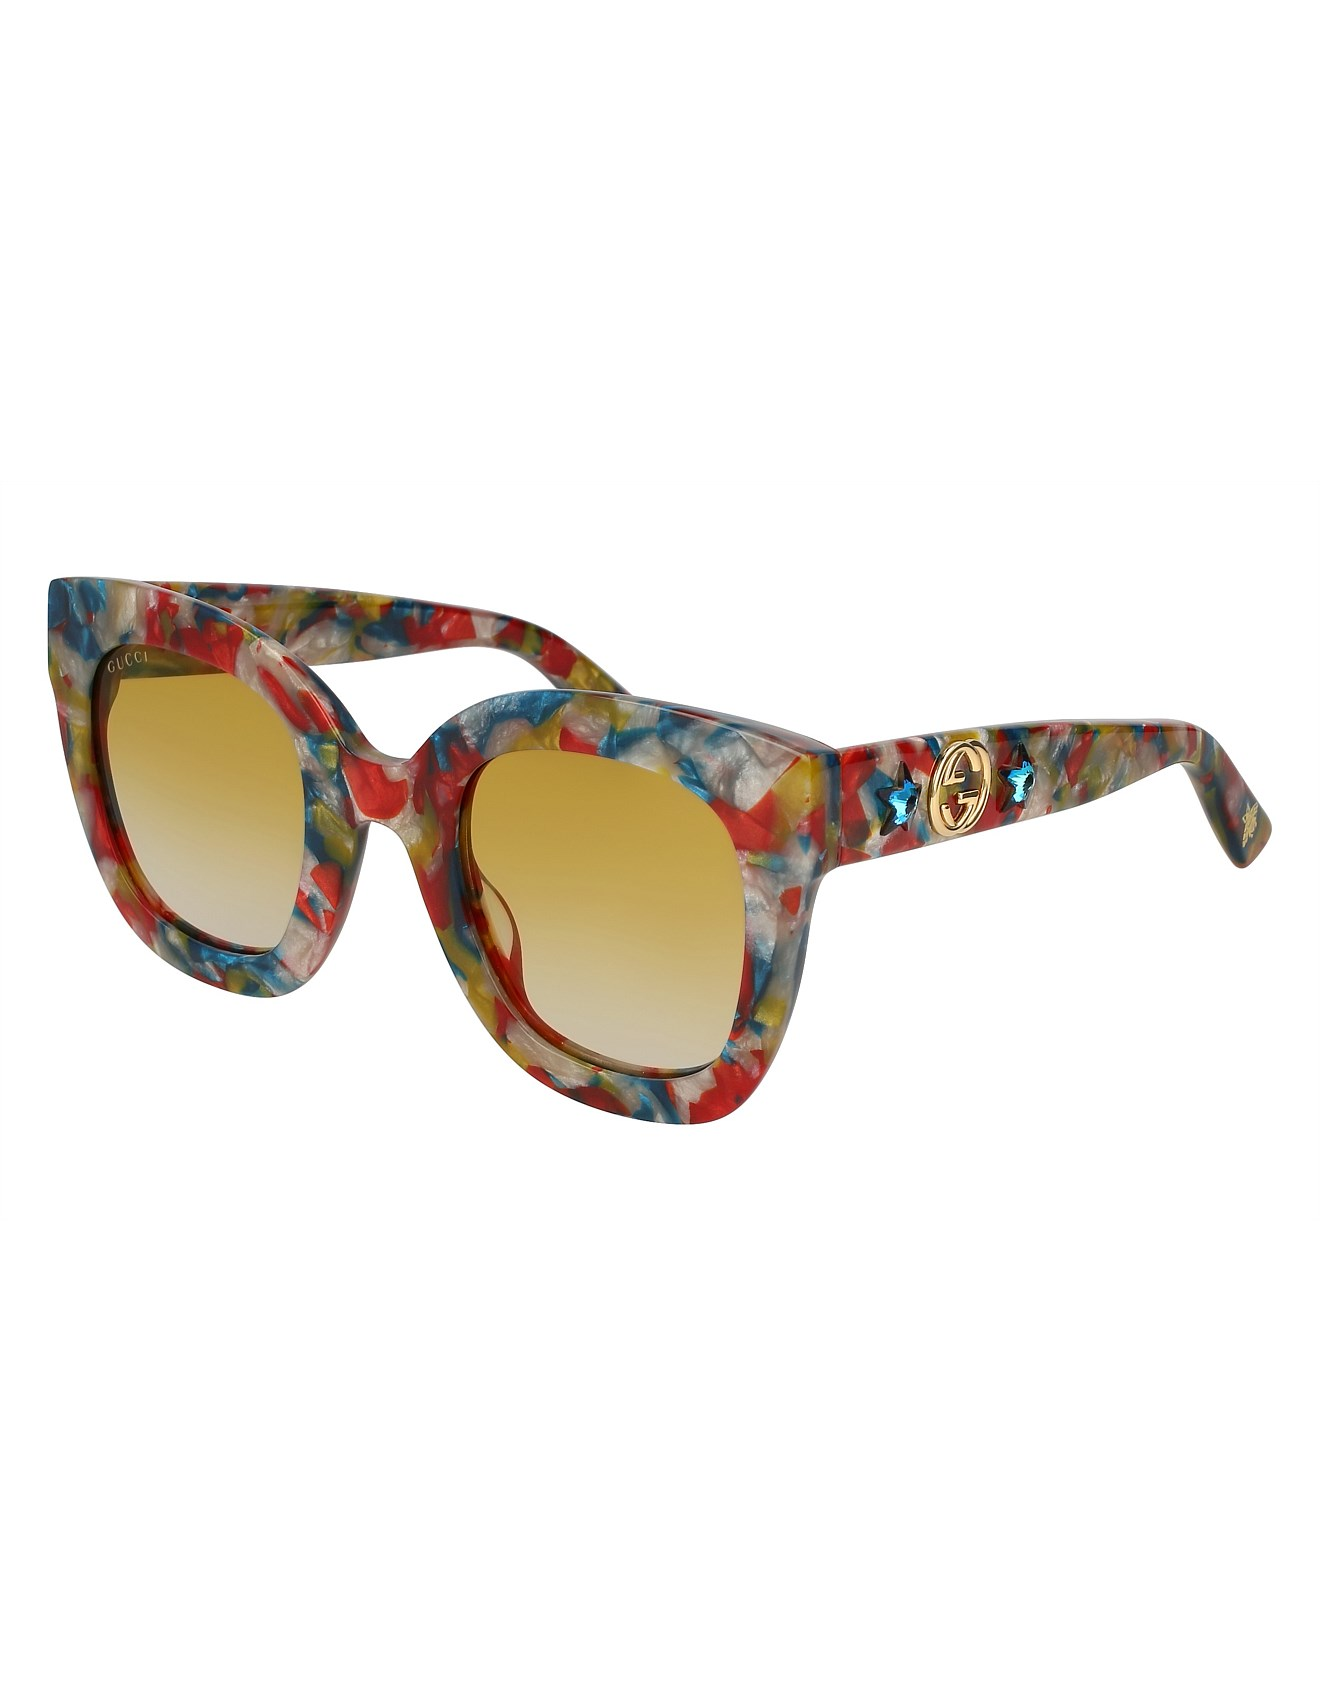 70ce6fbc8fb GG0208S-006 49 Sunglass WOMAN ACETATE